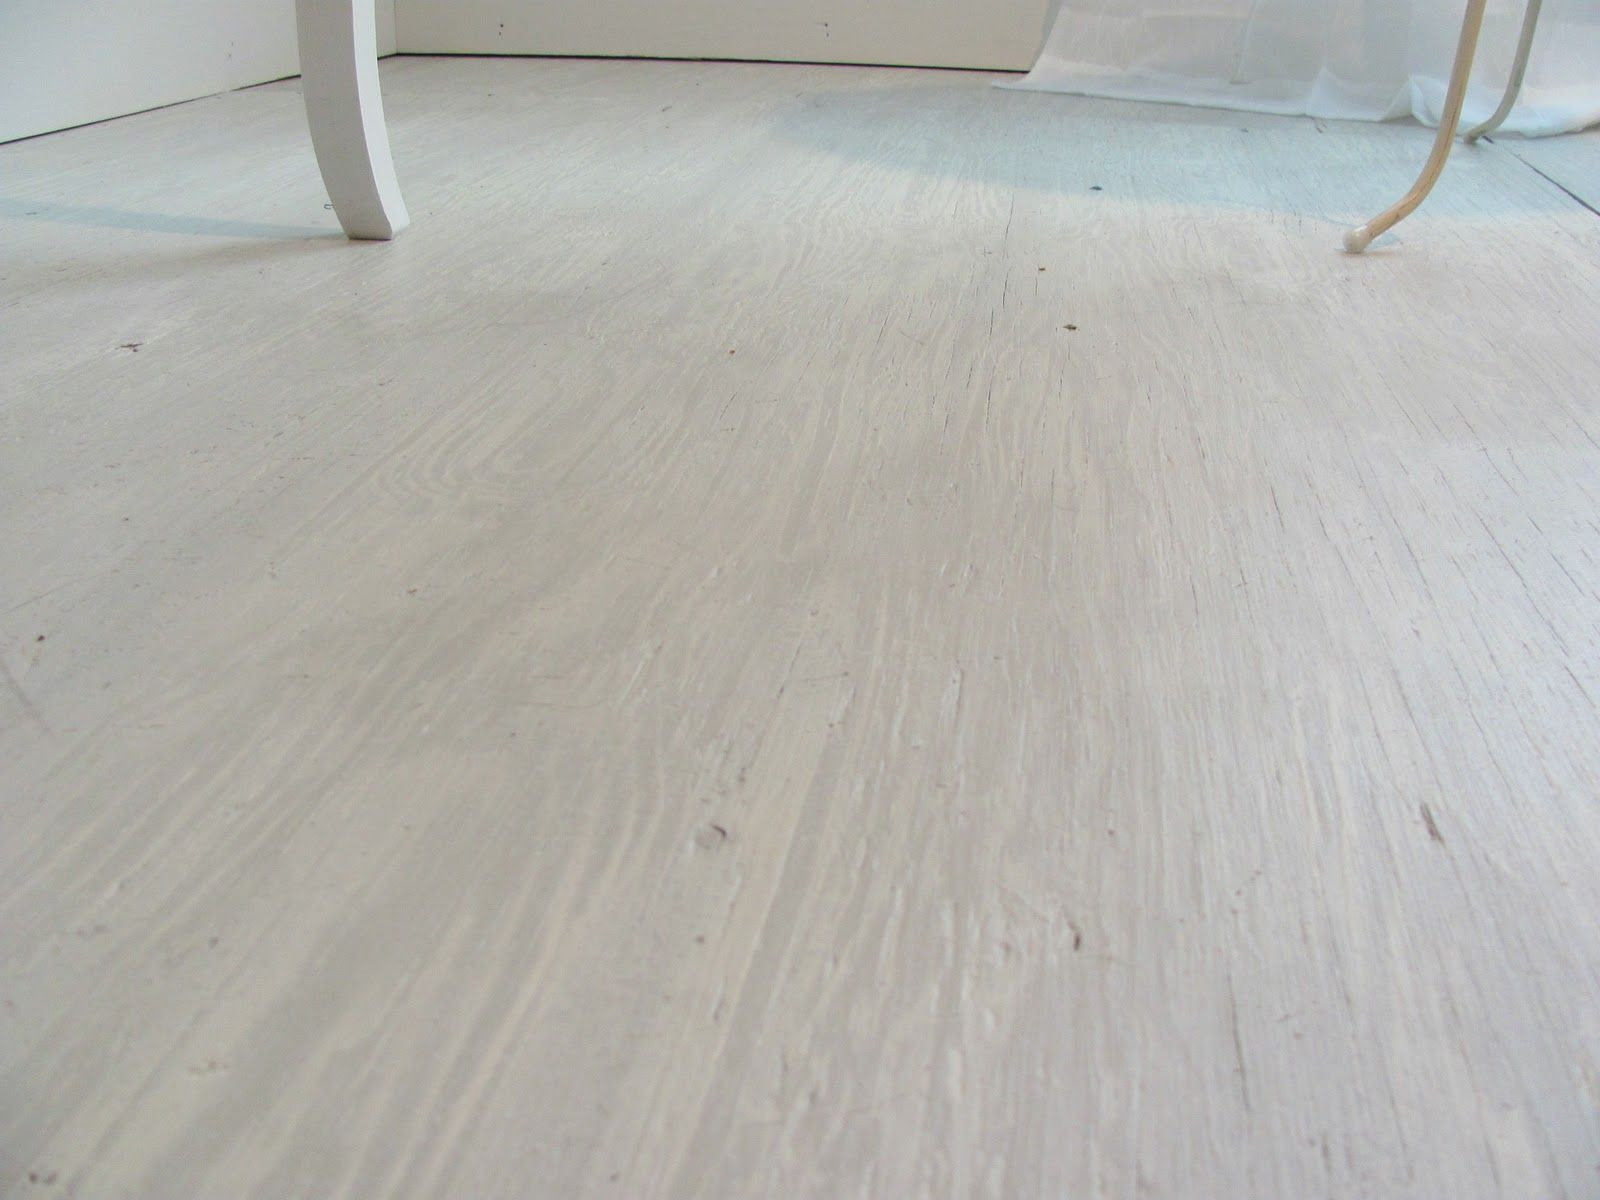 wood filler for prefinished hardwood floors of whitewashed plywood floors not really but thats what it looks pertaining to whitewashed plywood floors not really but thats what it looks like very cool pretty time consuming it sounds like emerald cove